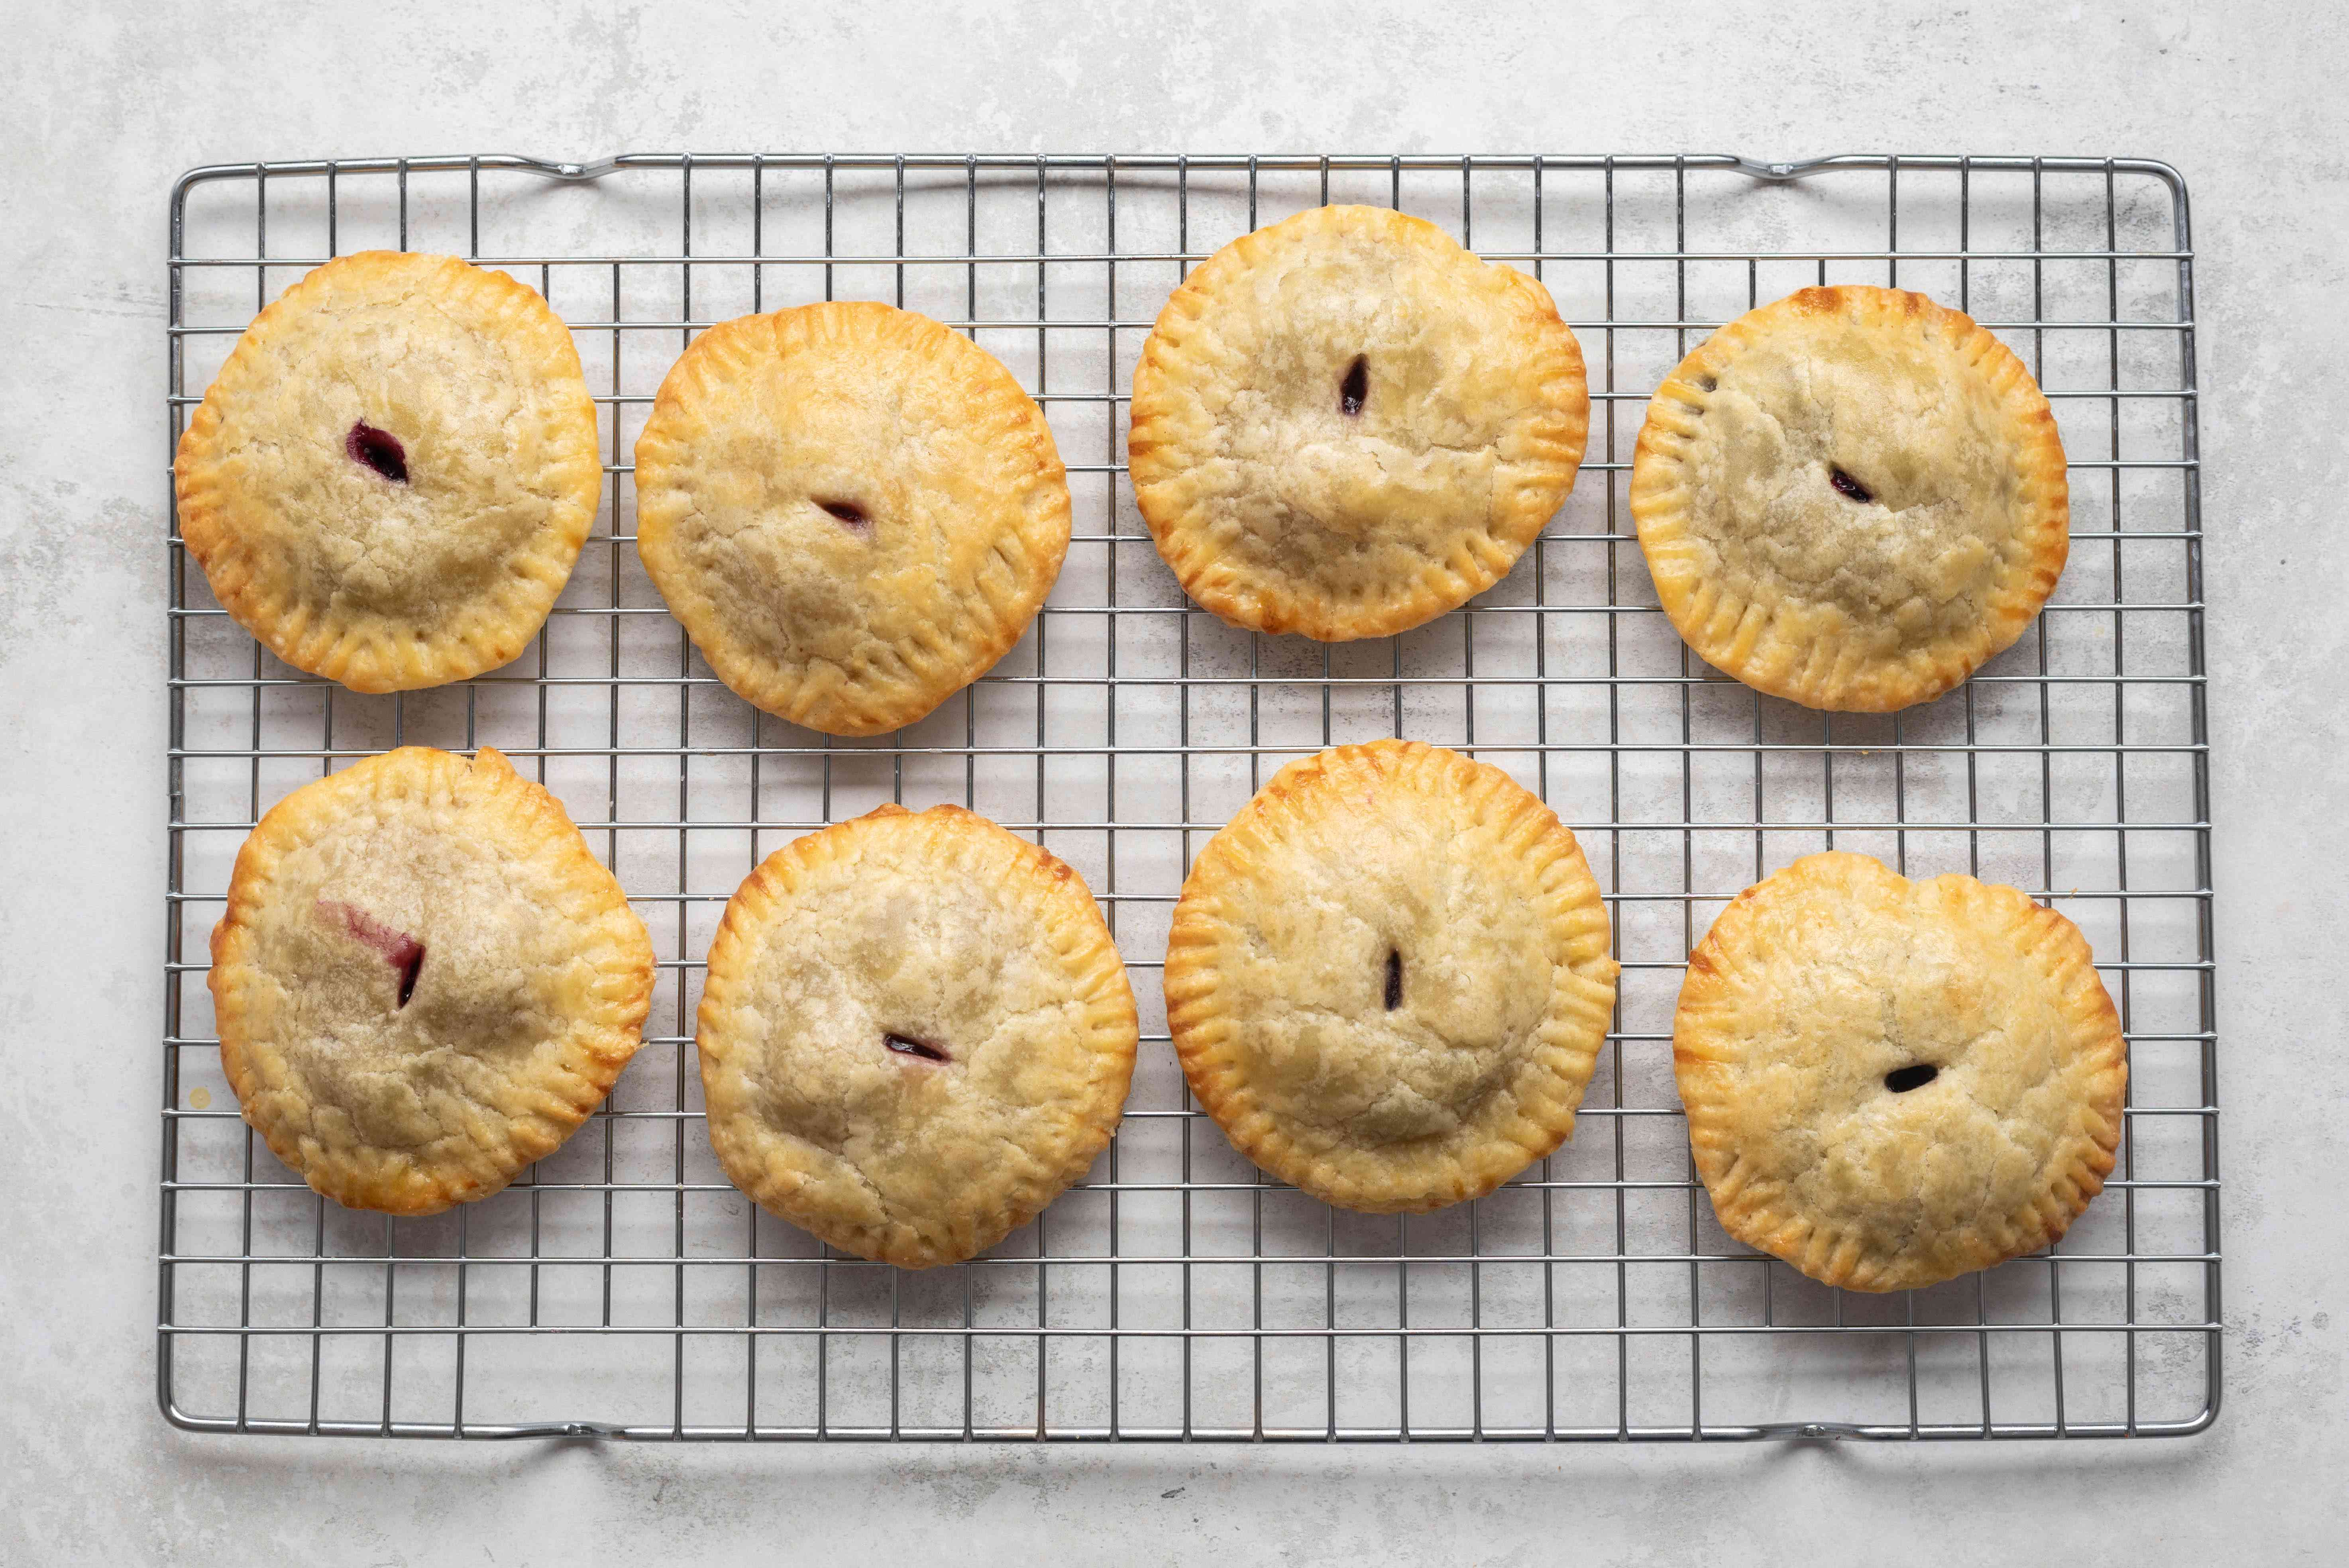 mini pies on a cooling wrack